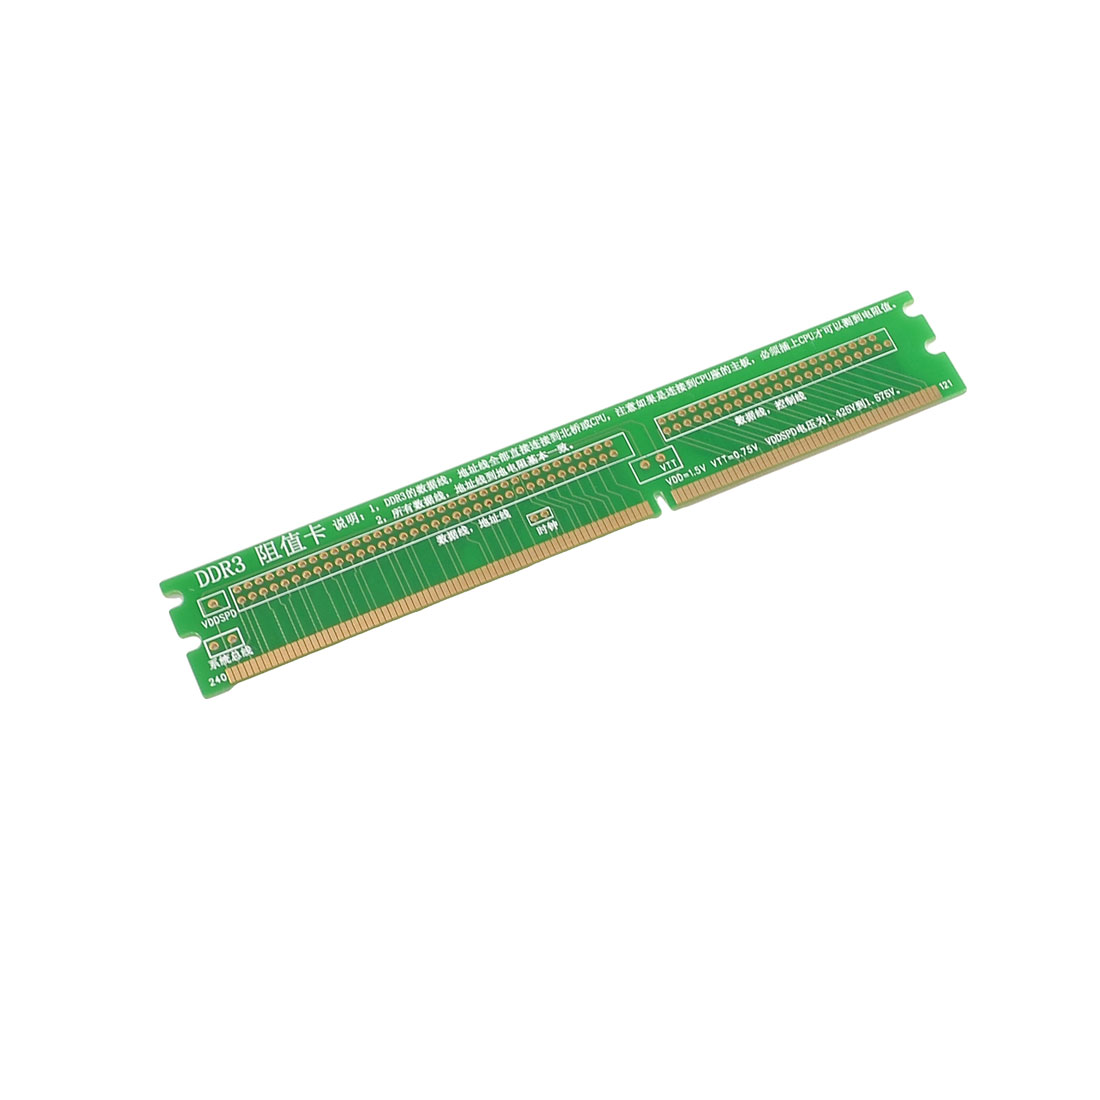 Desktop Motherboard Repair Tool DDR3 Mini-PCI Resistance Card